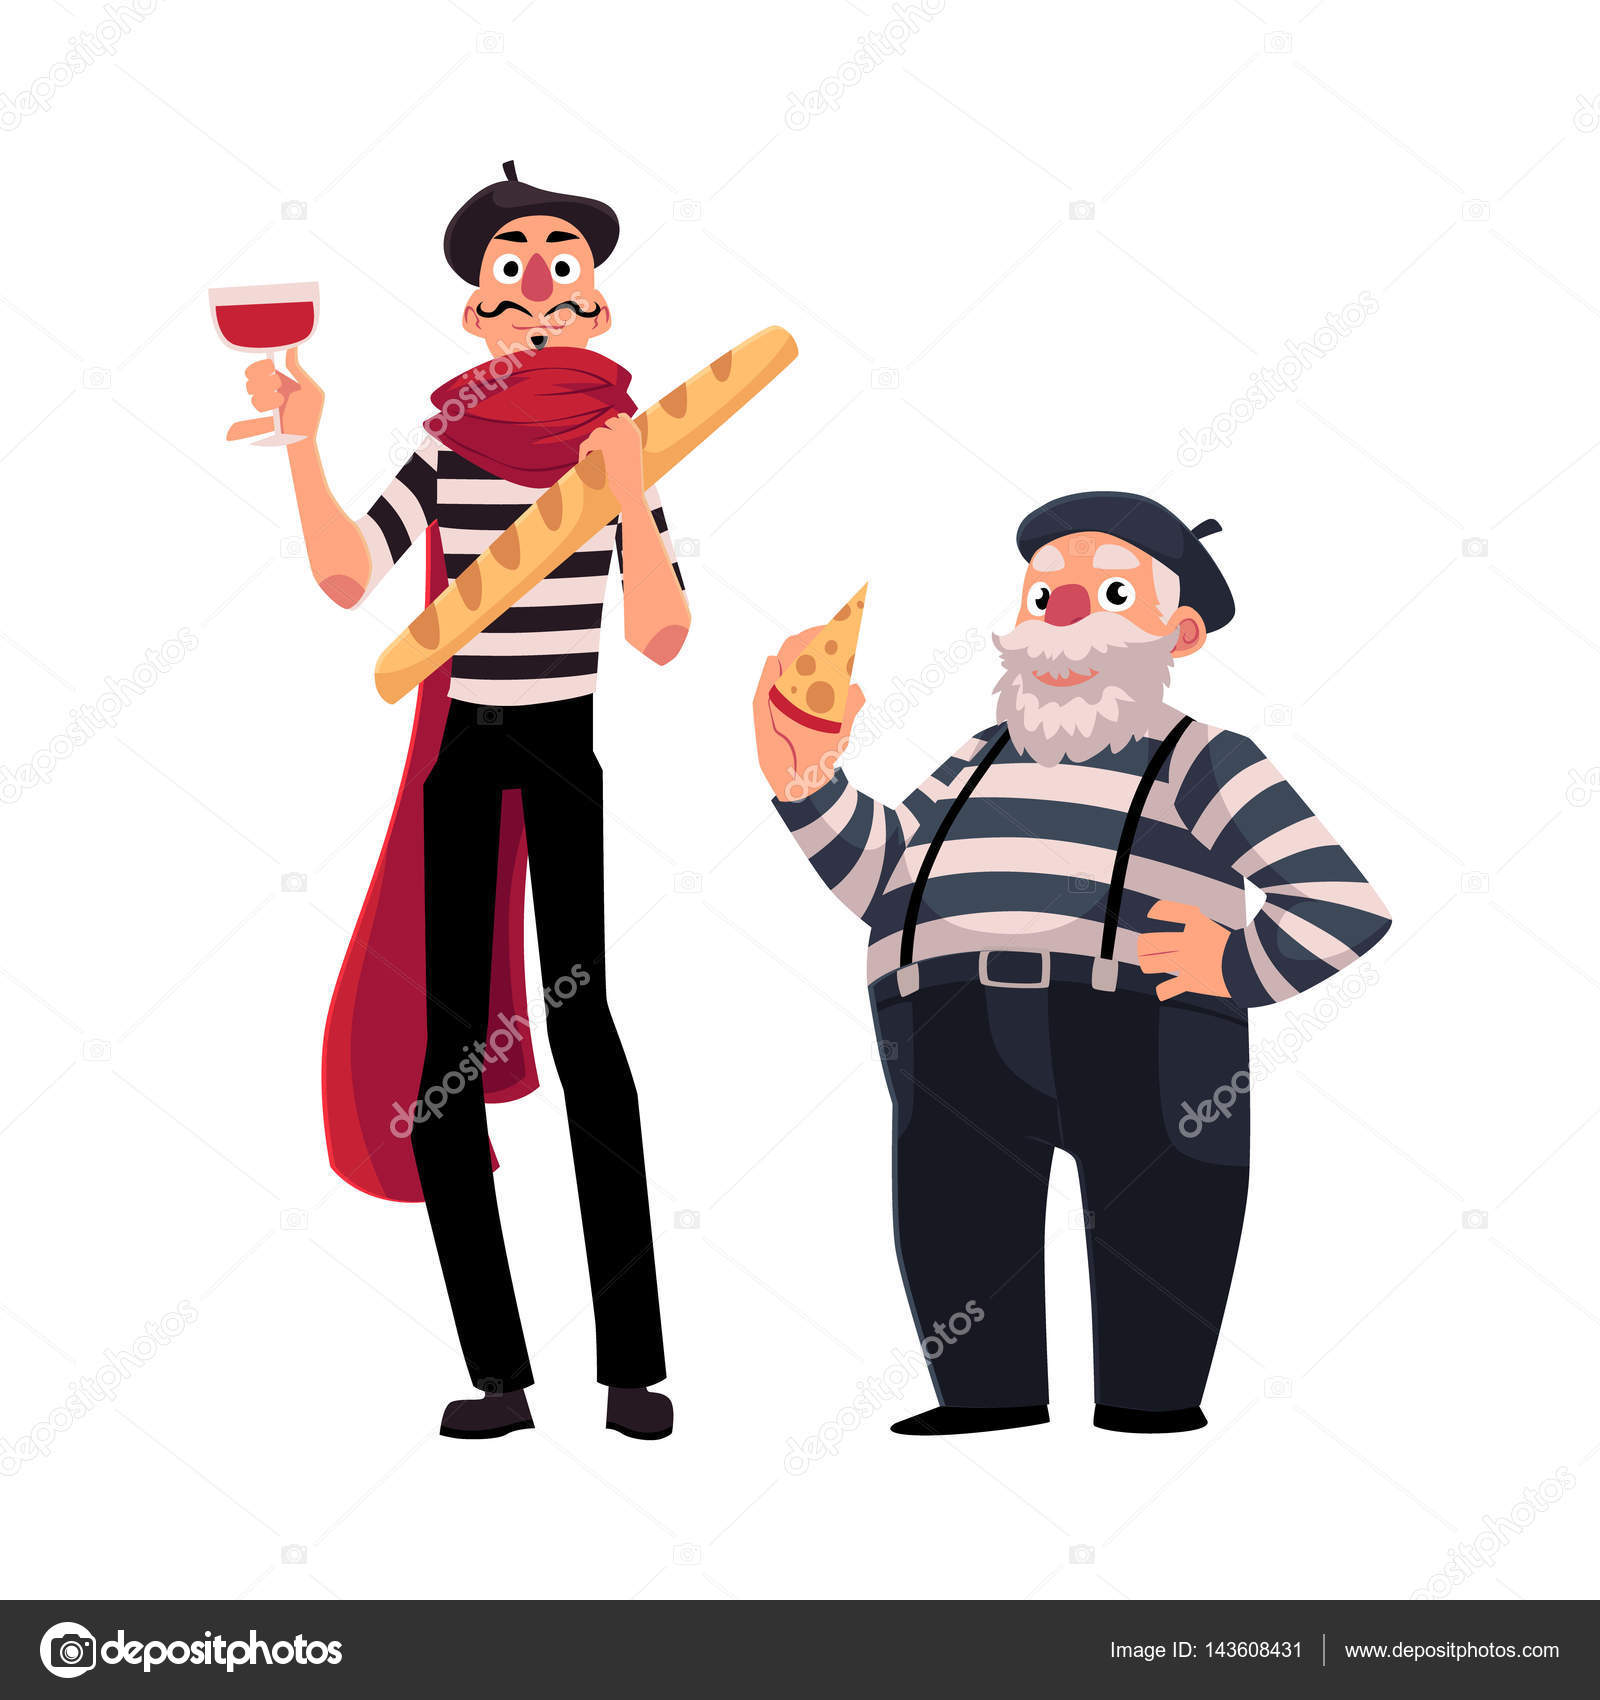 Two french mimes young and old with symbols of france stock two french mimes young and old with symbols of france stock vector biocorpaavc